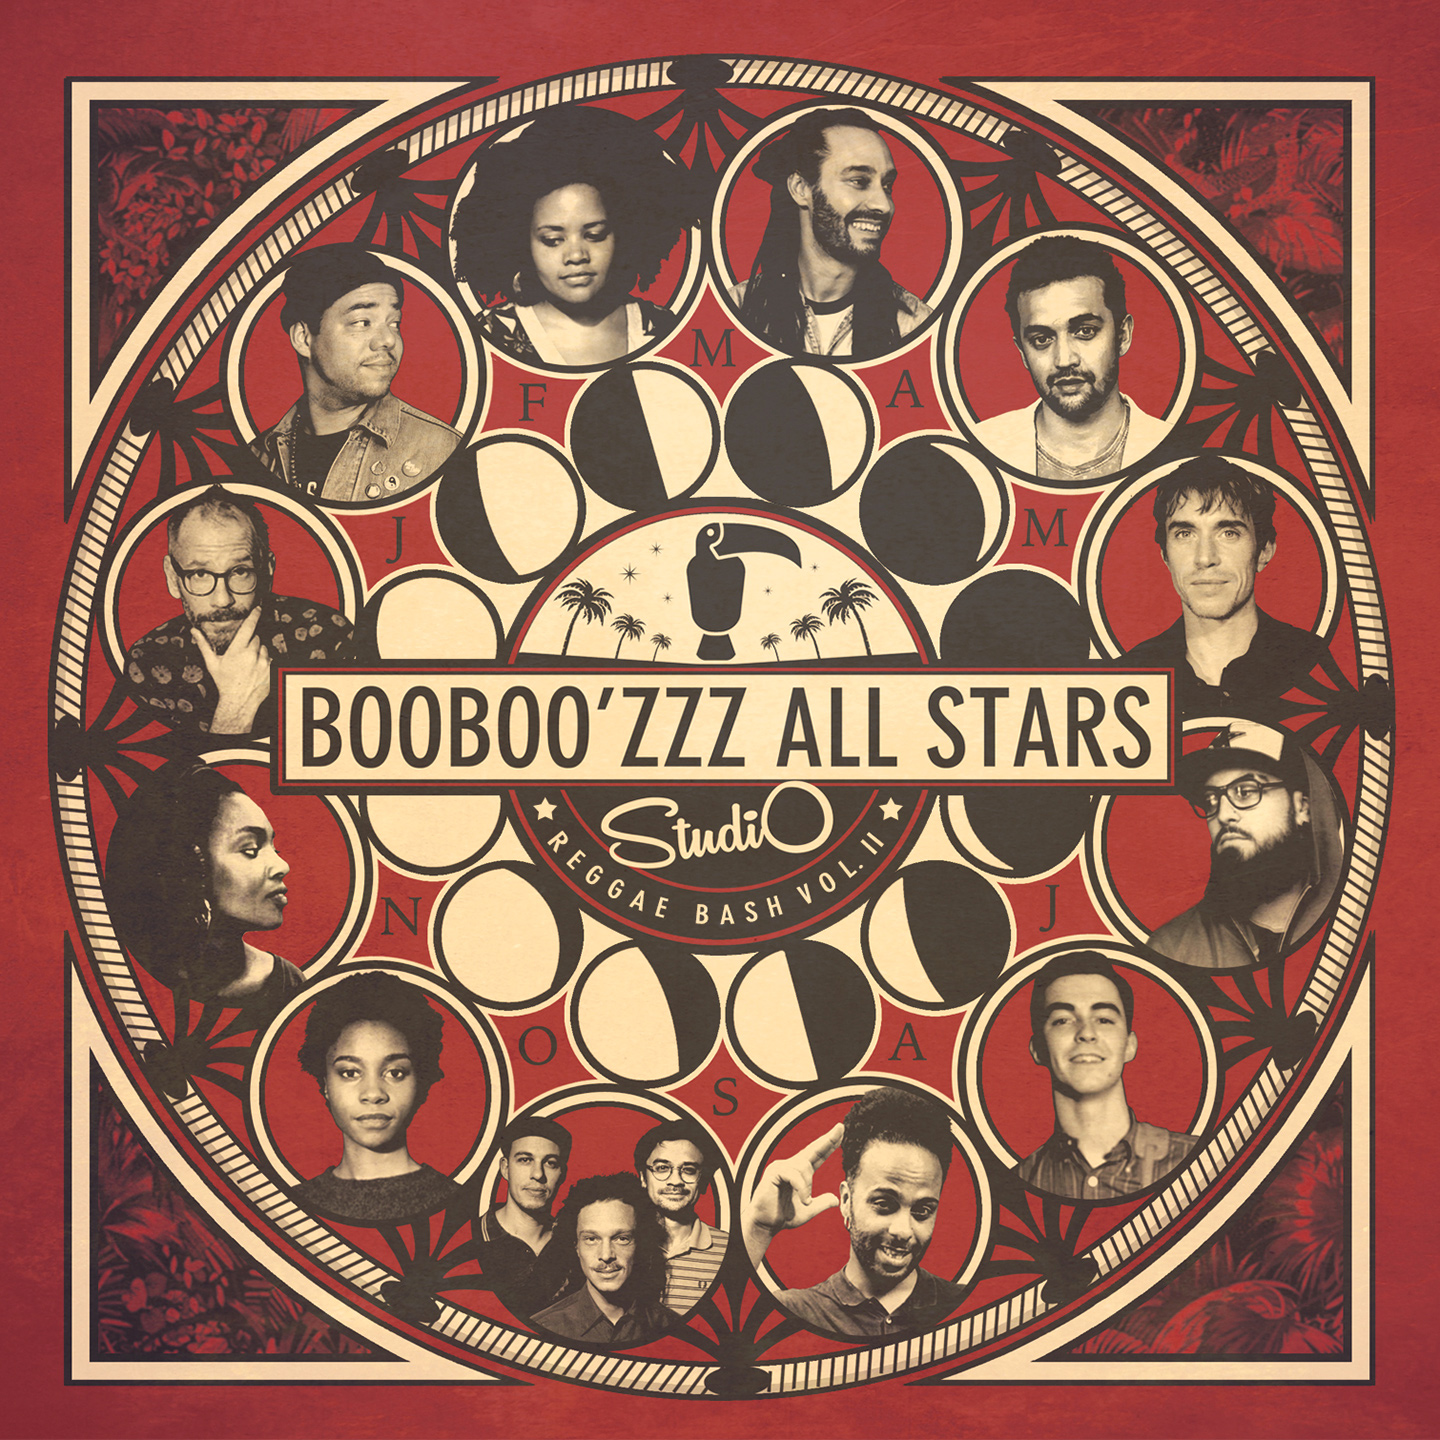 pochette-cover-artiste-Booboozzz All Stars-album-Studio Reggae Bash 2